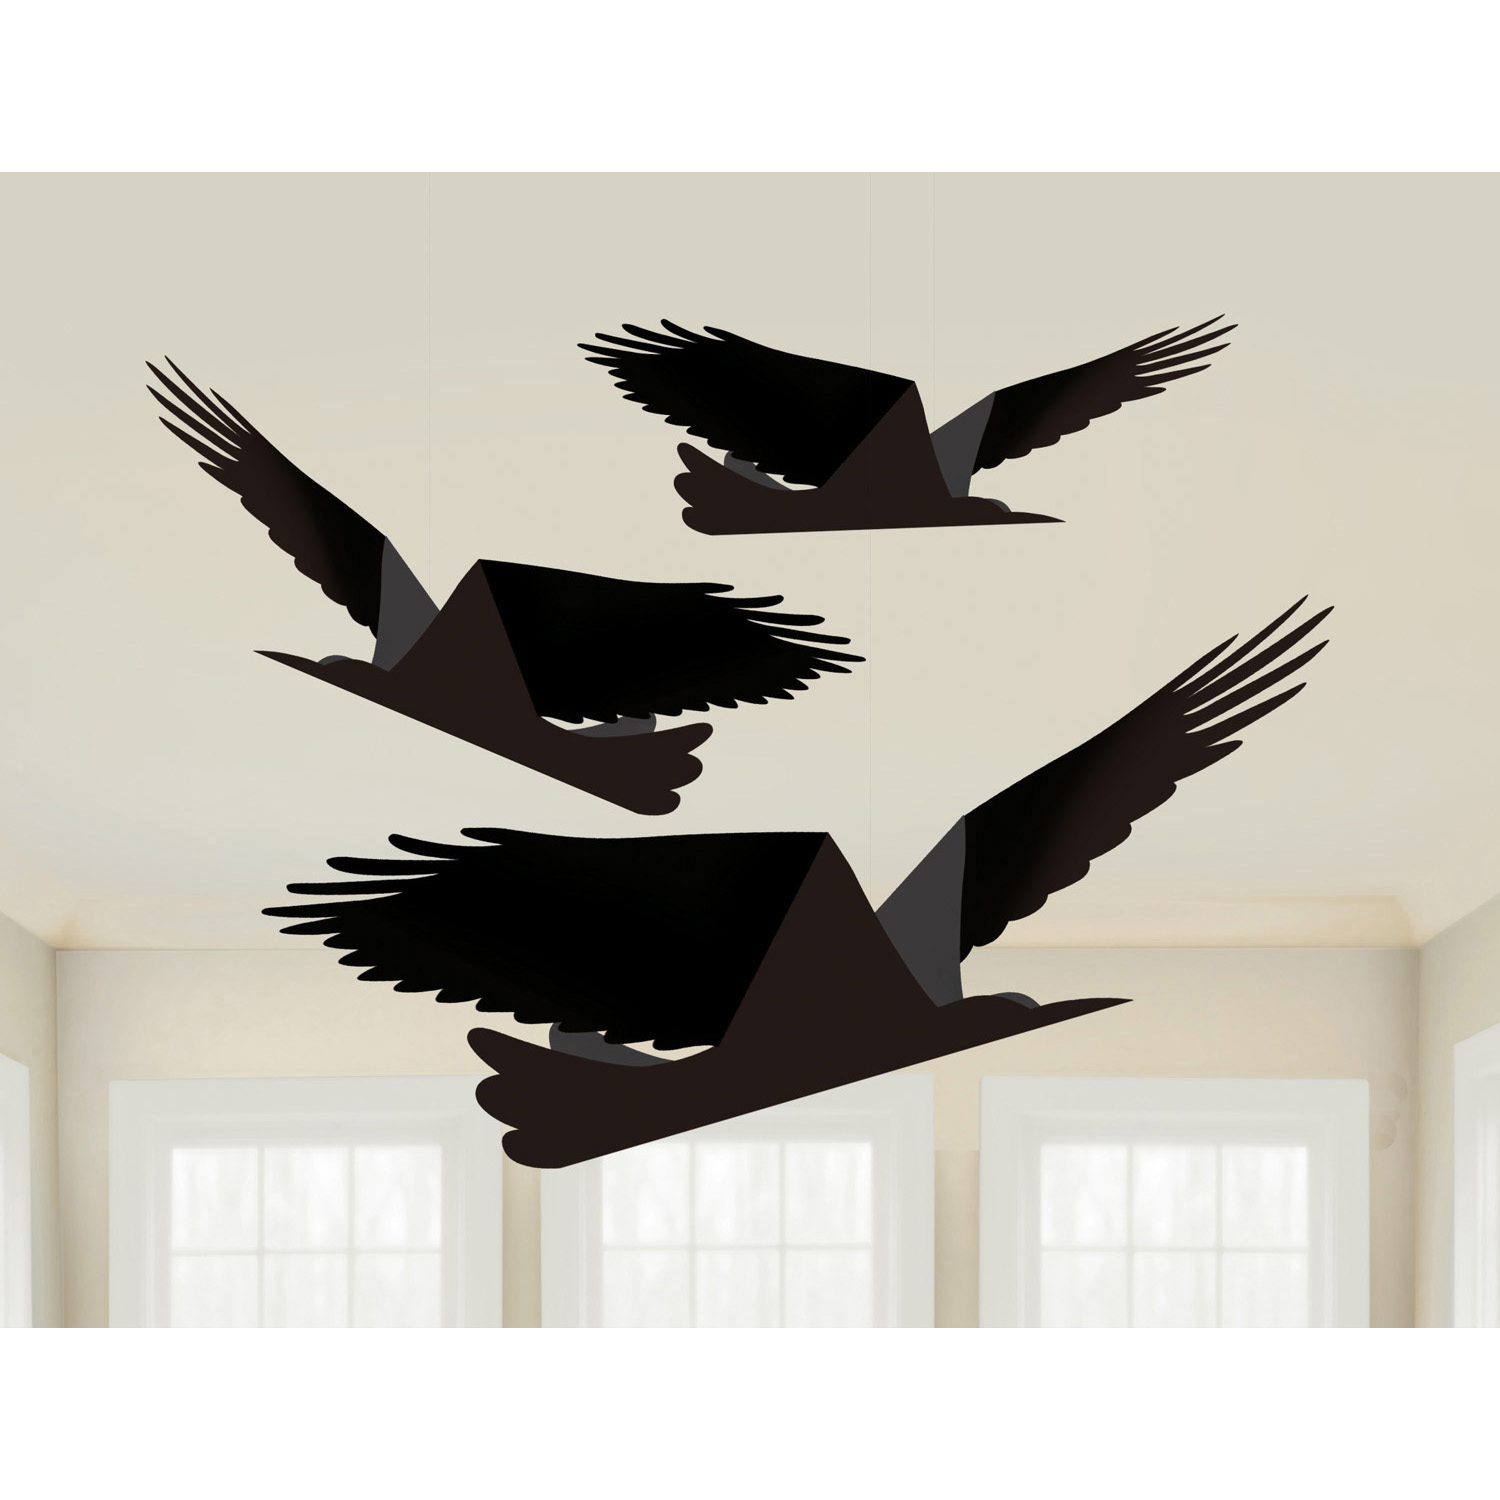 Boneshine Fever Paper Ravens Decorations